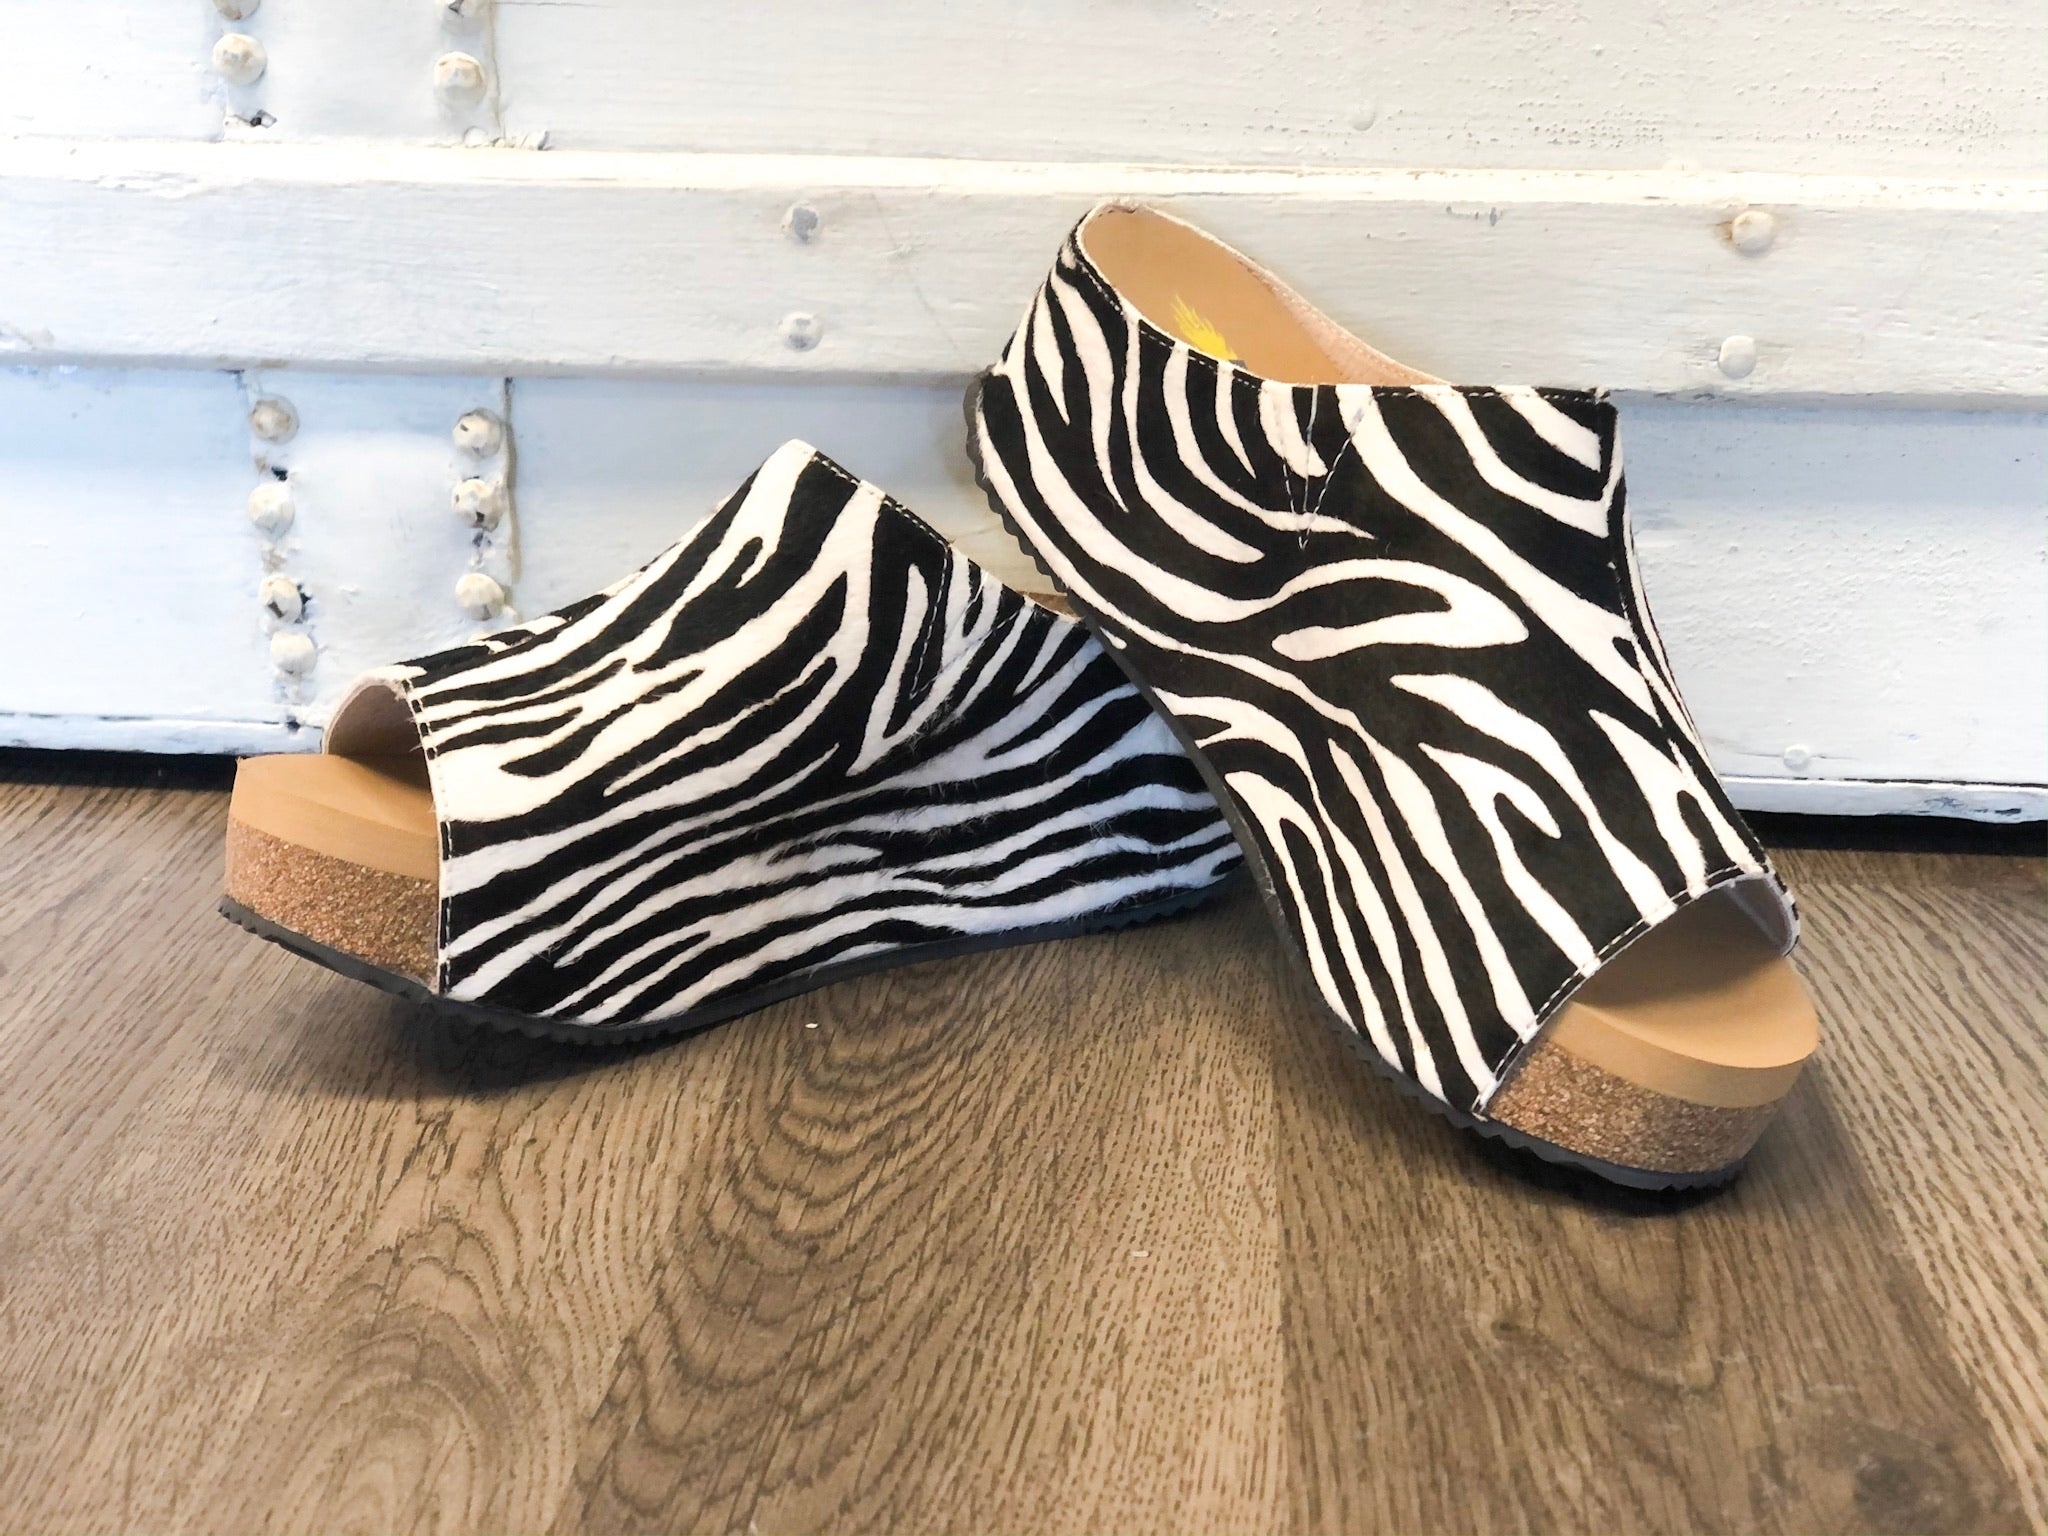 Zebra Verena Slide-On Sandals *Final Sale*